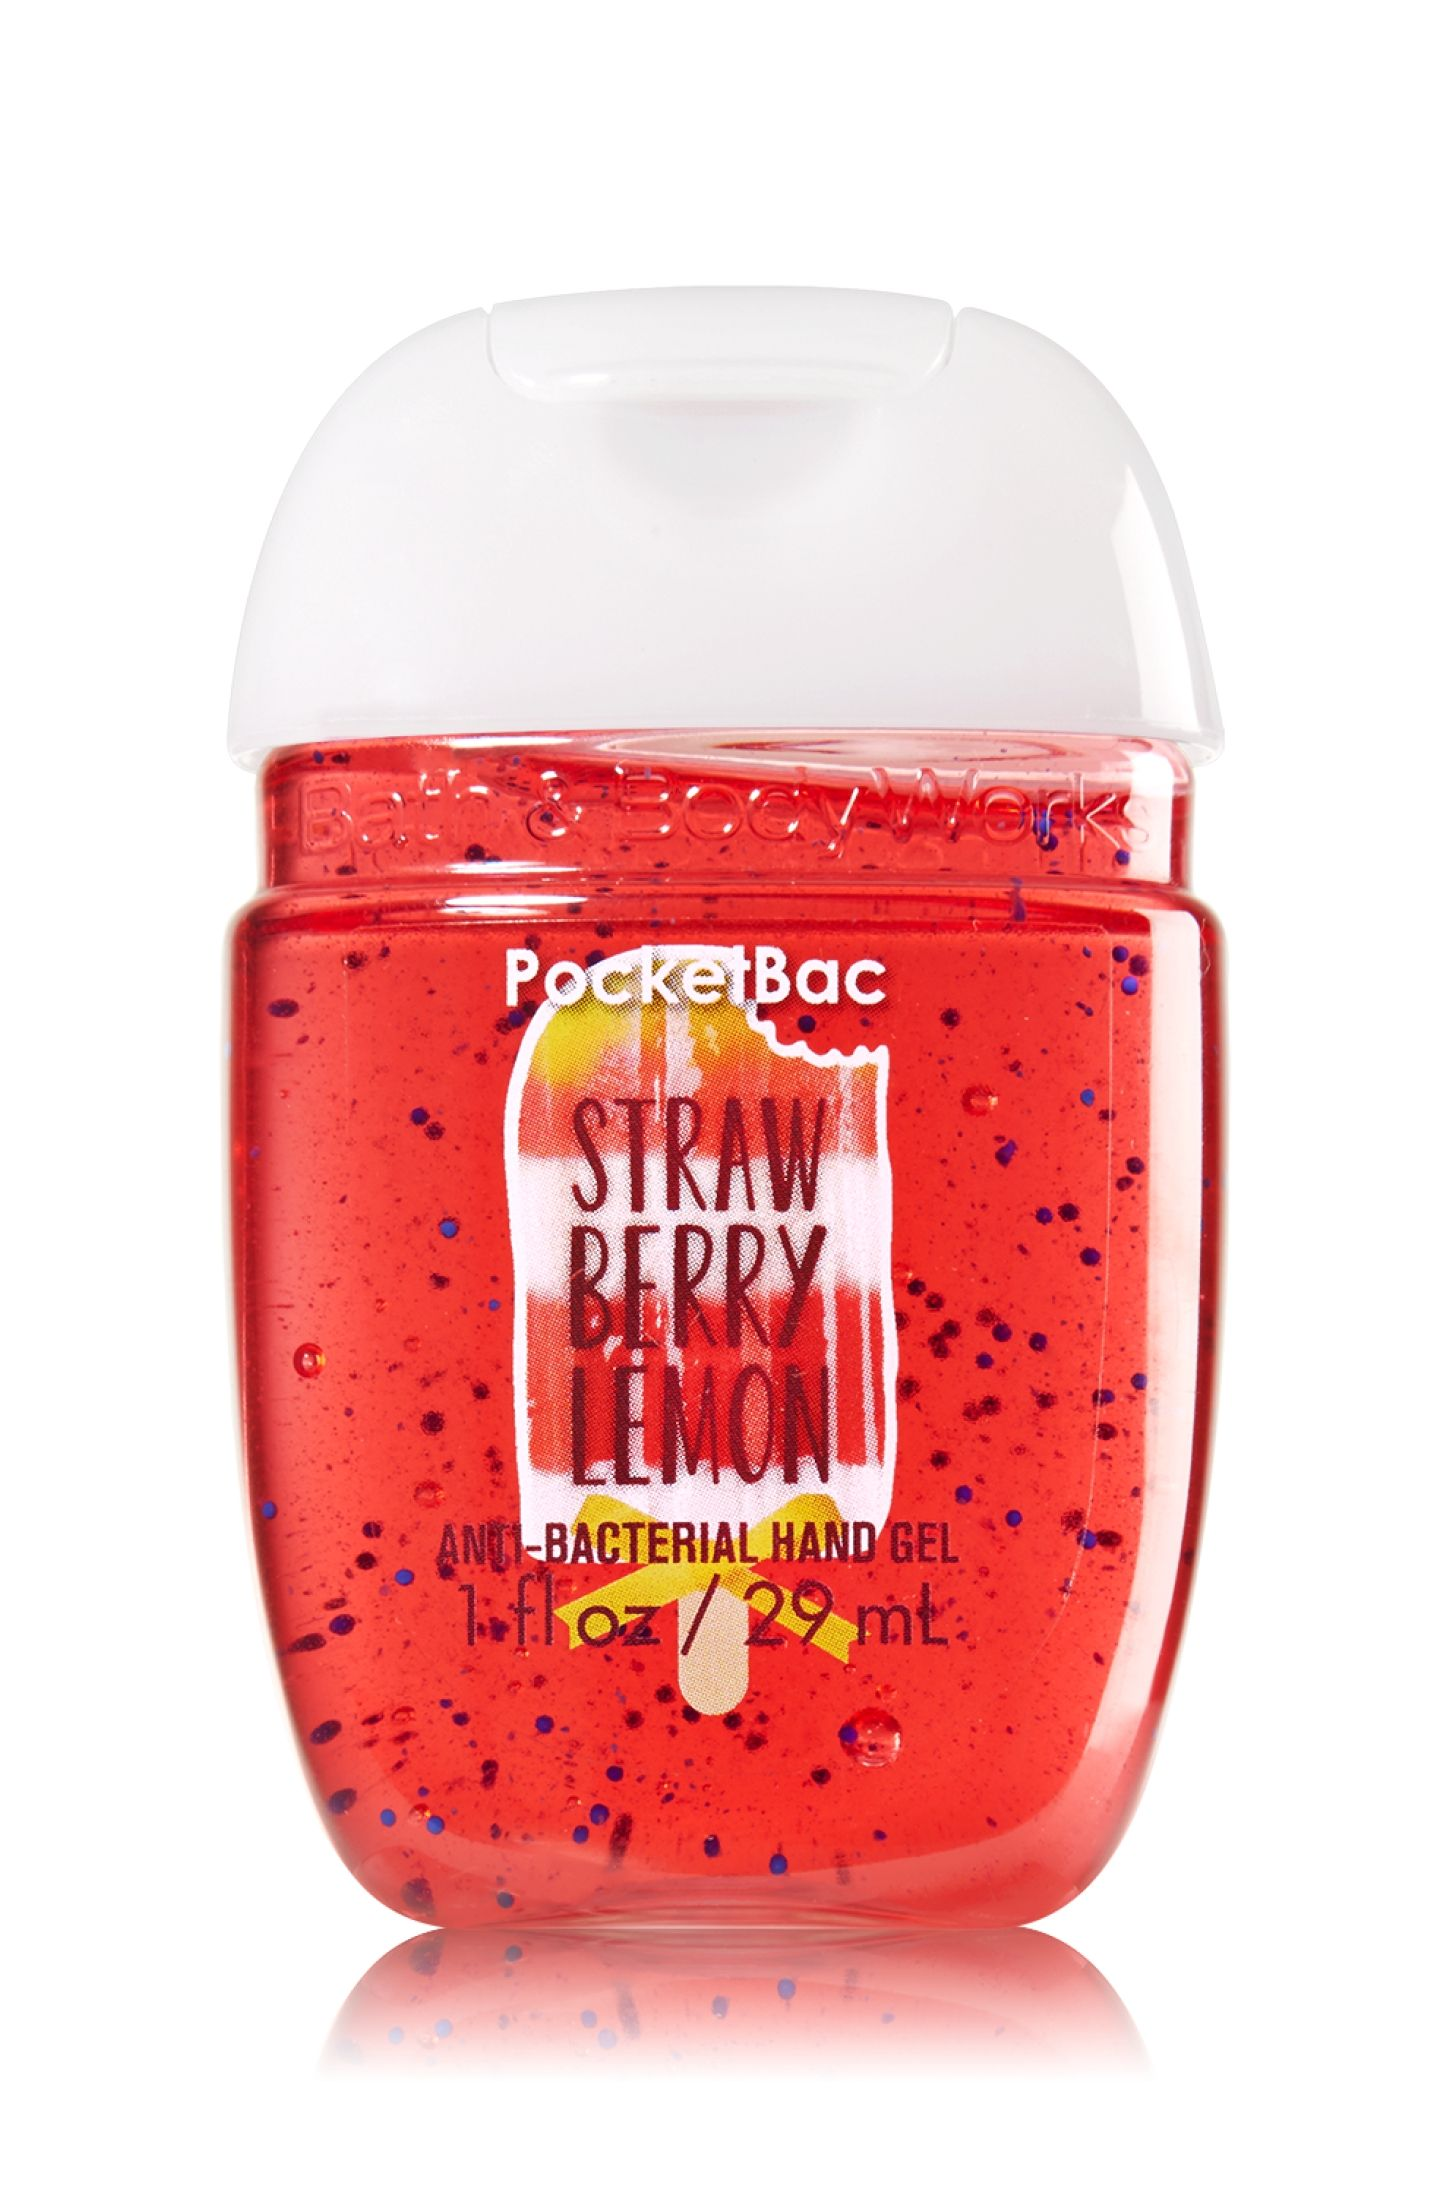 Bath Body Works Strawberry Lemon Pocketbac Sanitizing Hand Gel